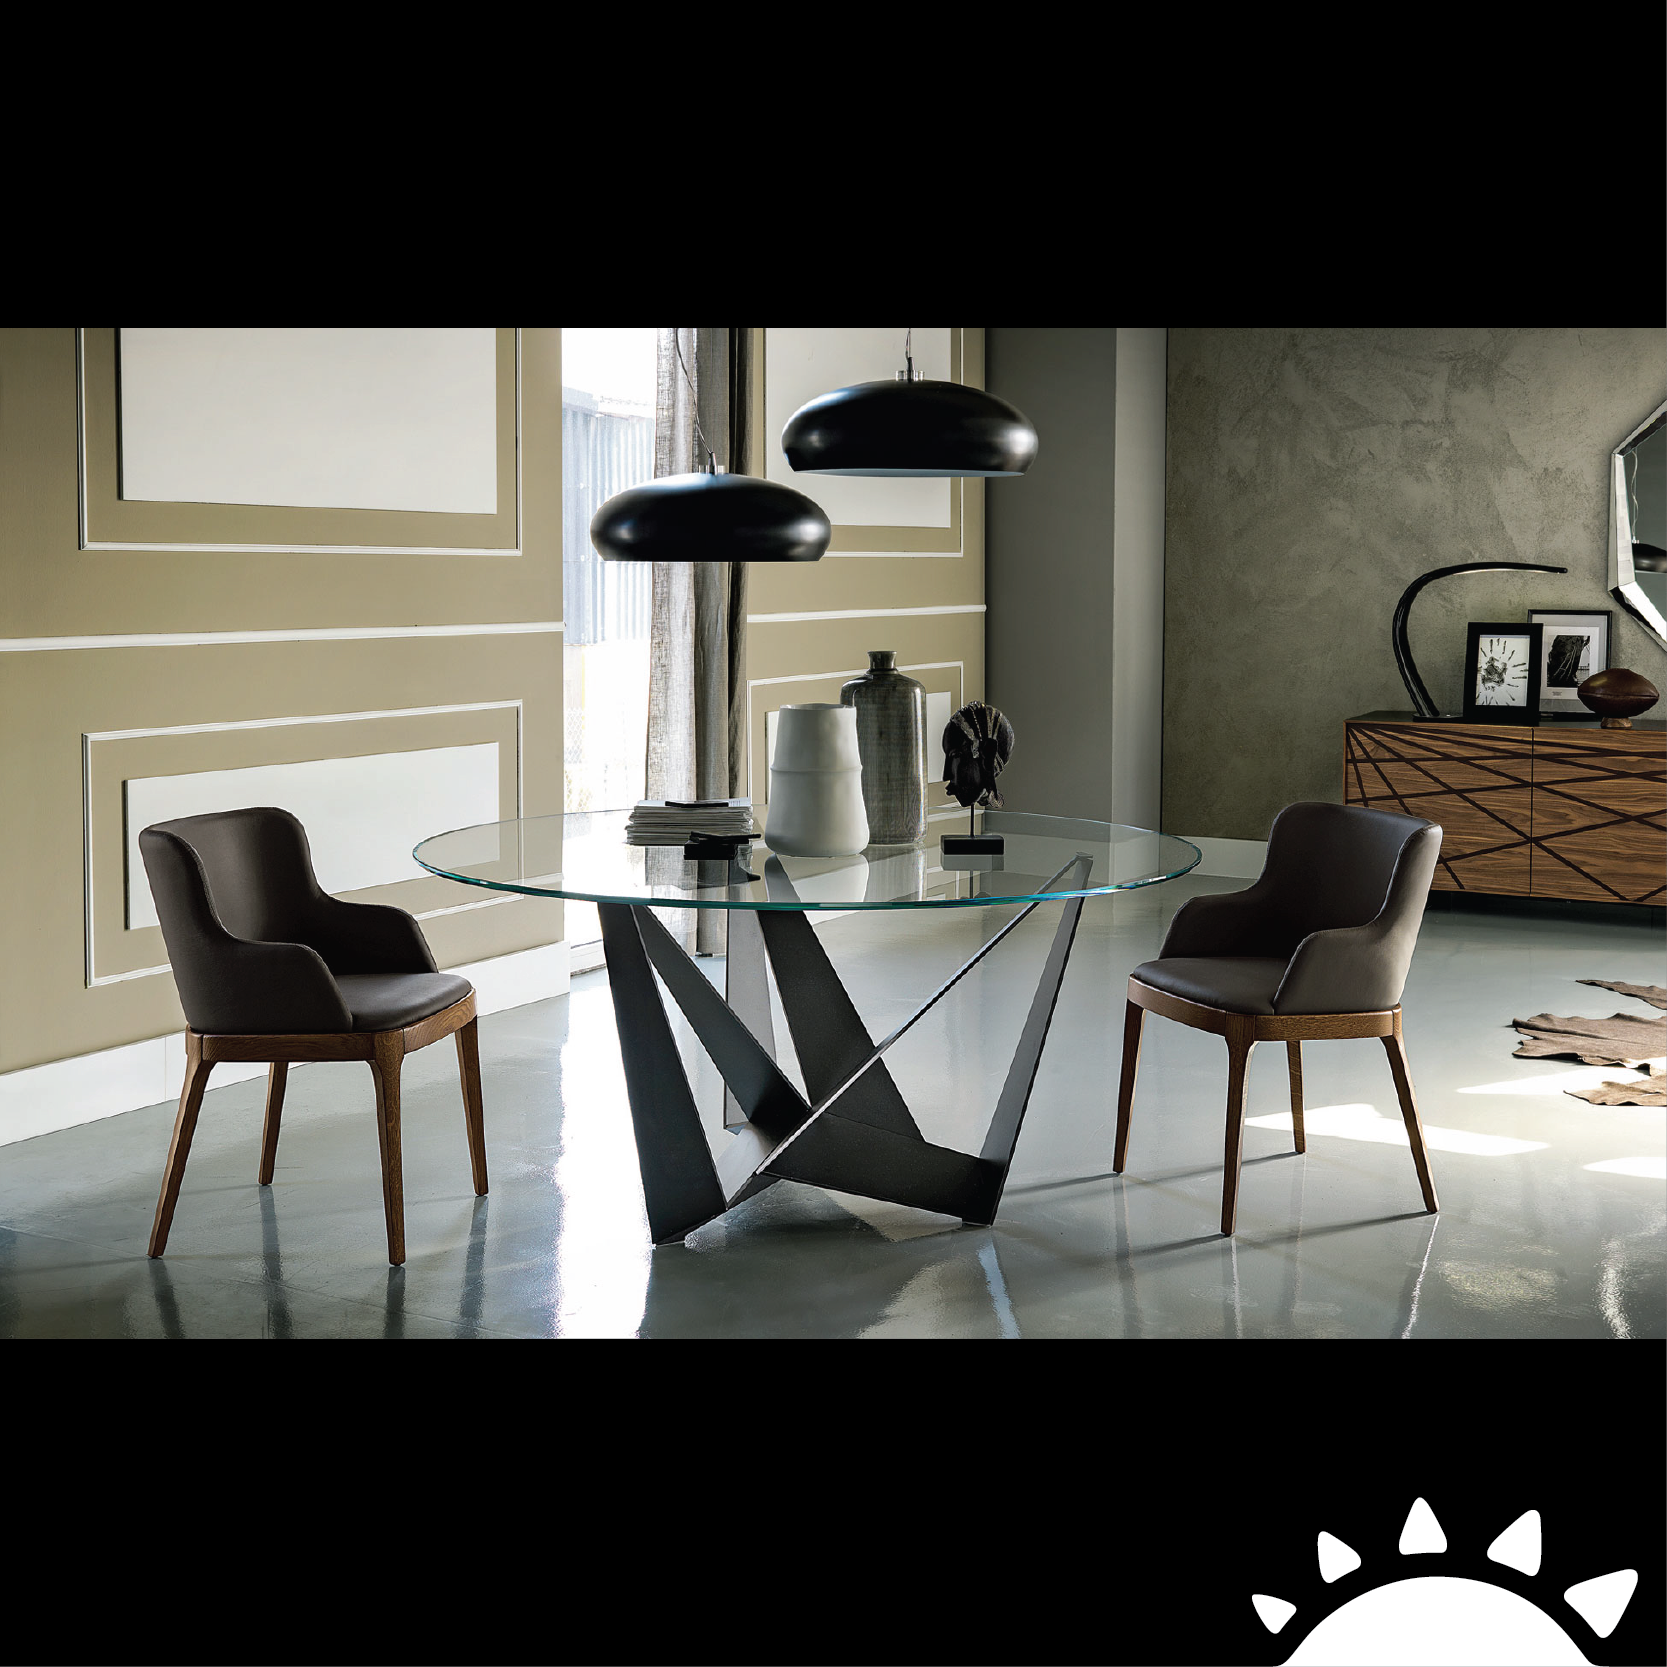 Skorpio table with glass top Classy Contemporary Tables Offer Sculptural  Style And Geometric Contrast